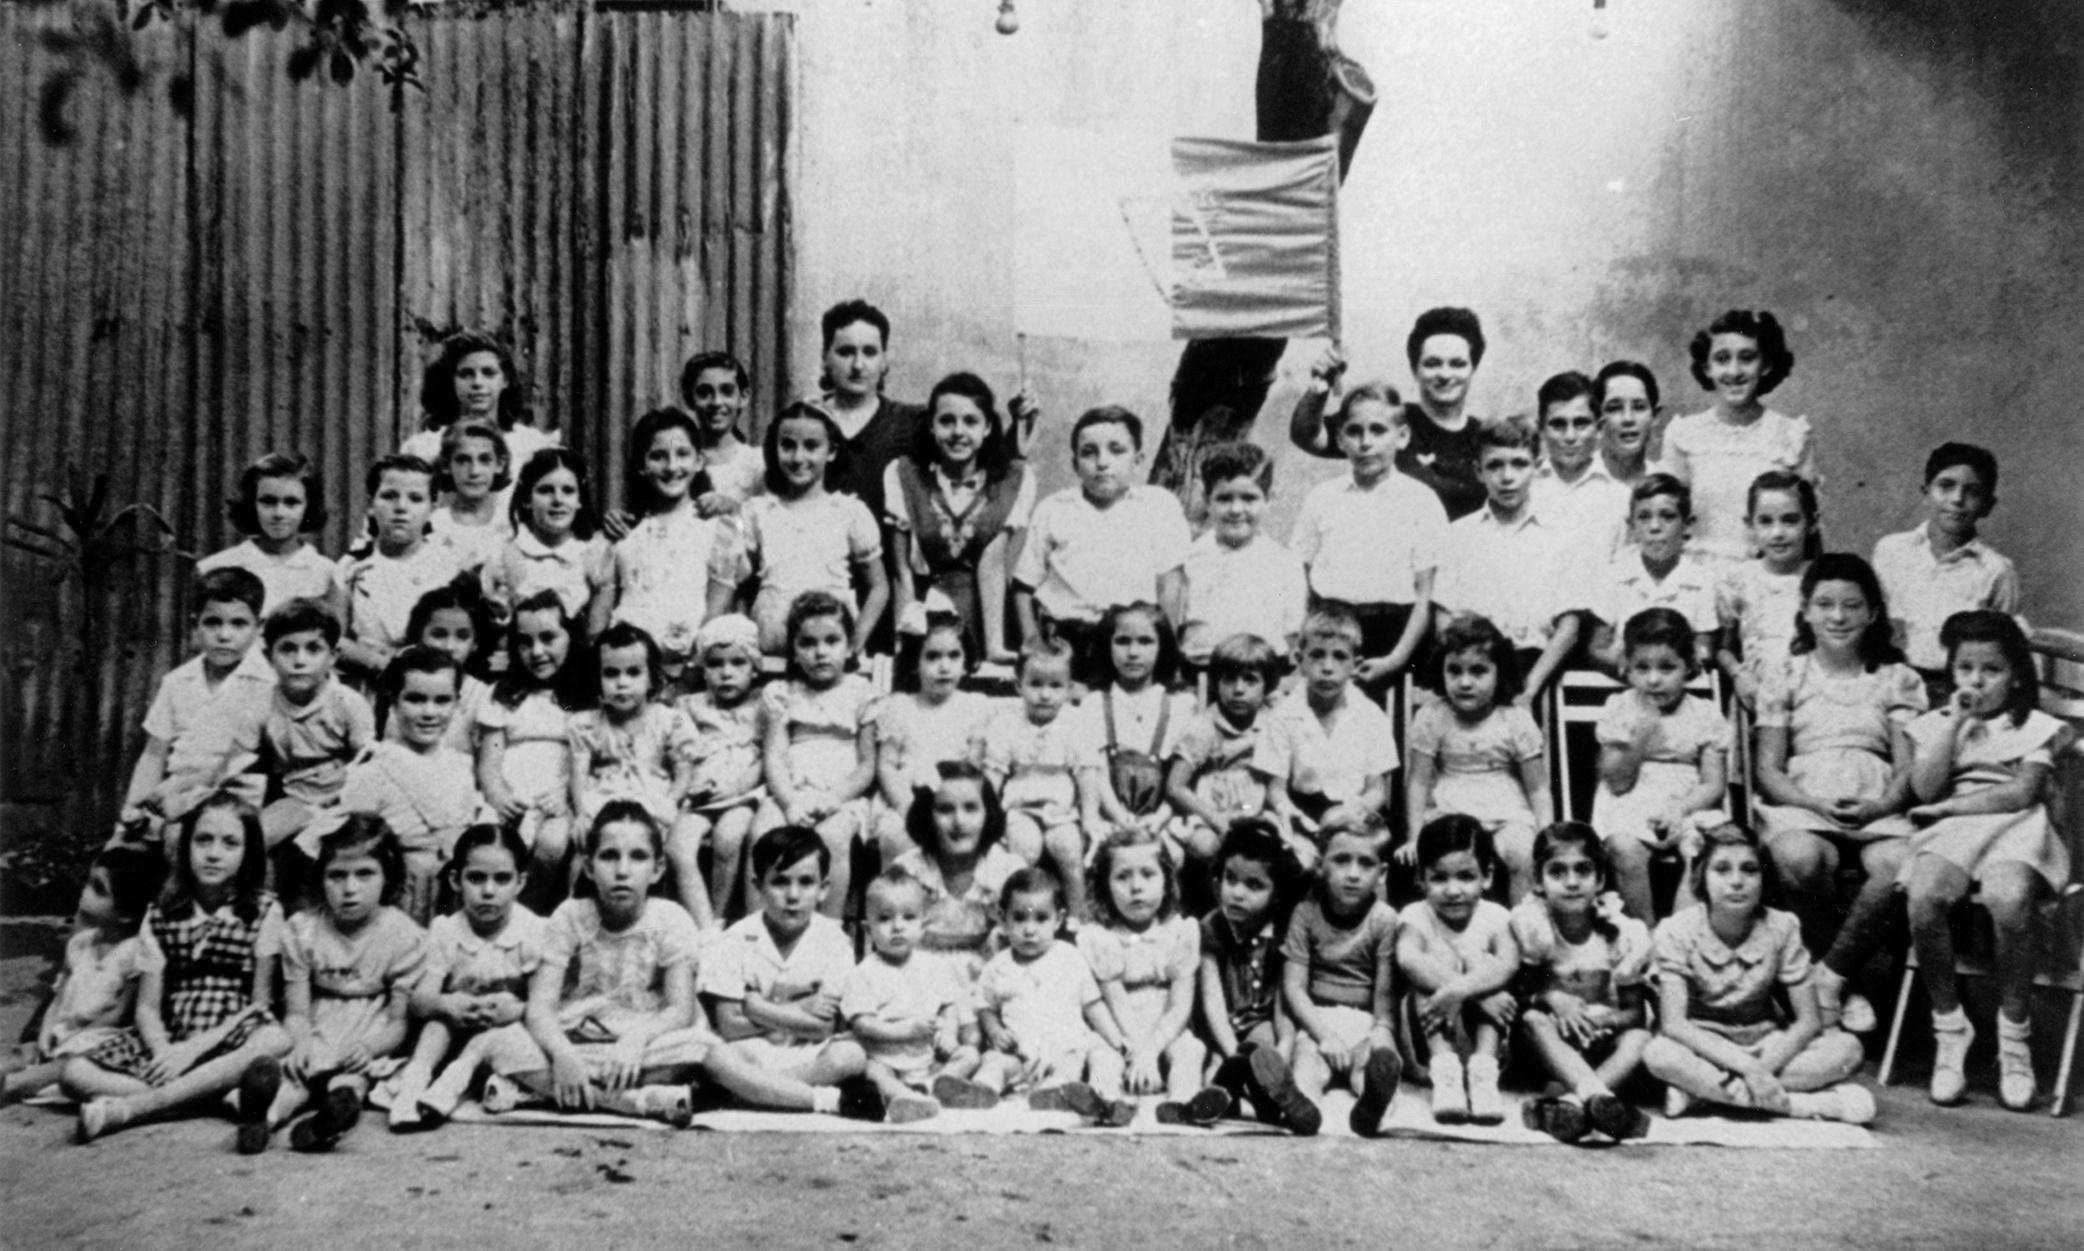 Revealed: how the Caribbean became a haven for Jews fleeing Nazi tyranny